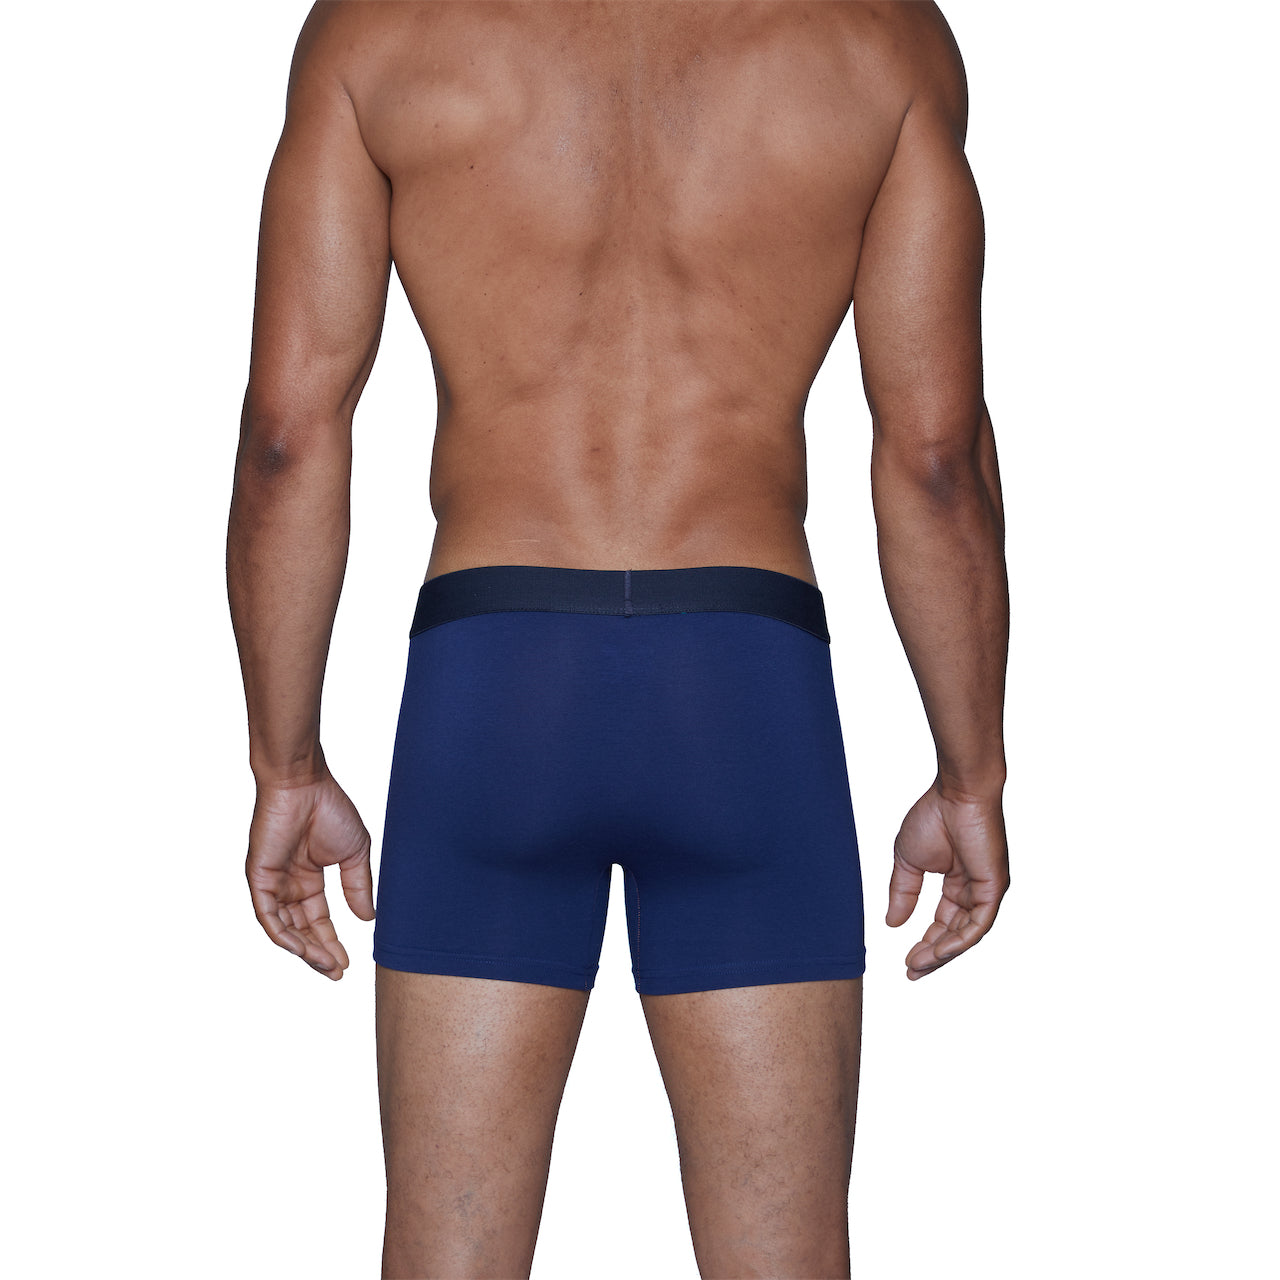 Wood Boxer Brief in Deep Space Blue